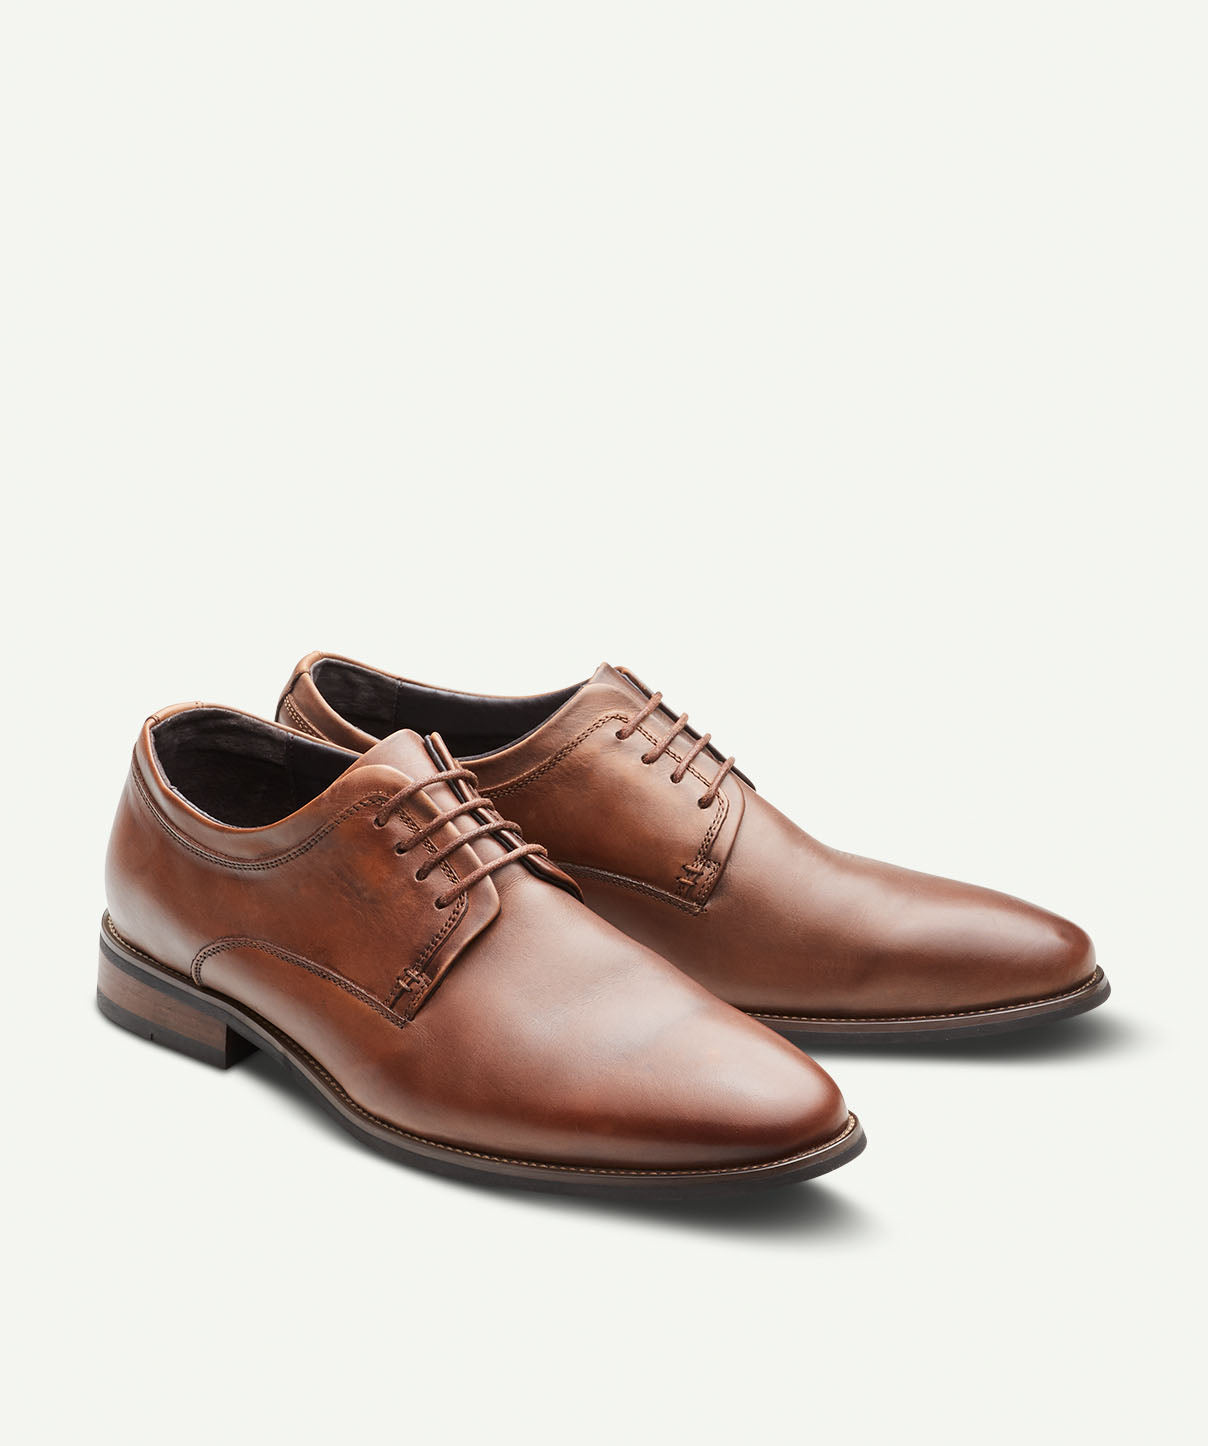 Hush Puppies Dress Shoes - Coffee Brown